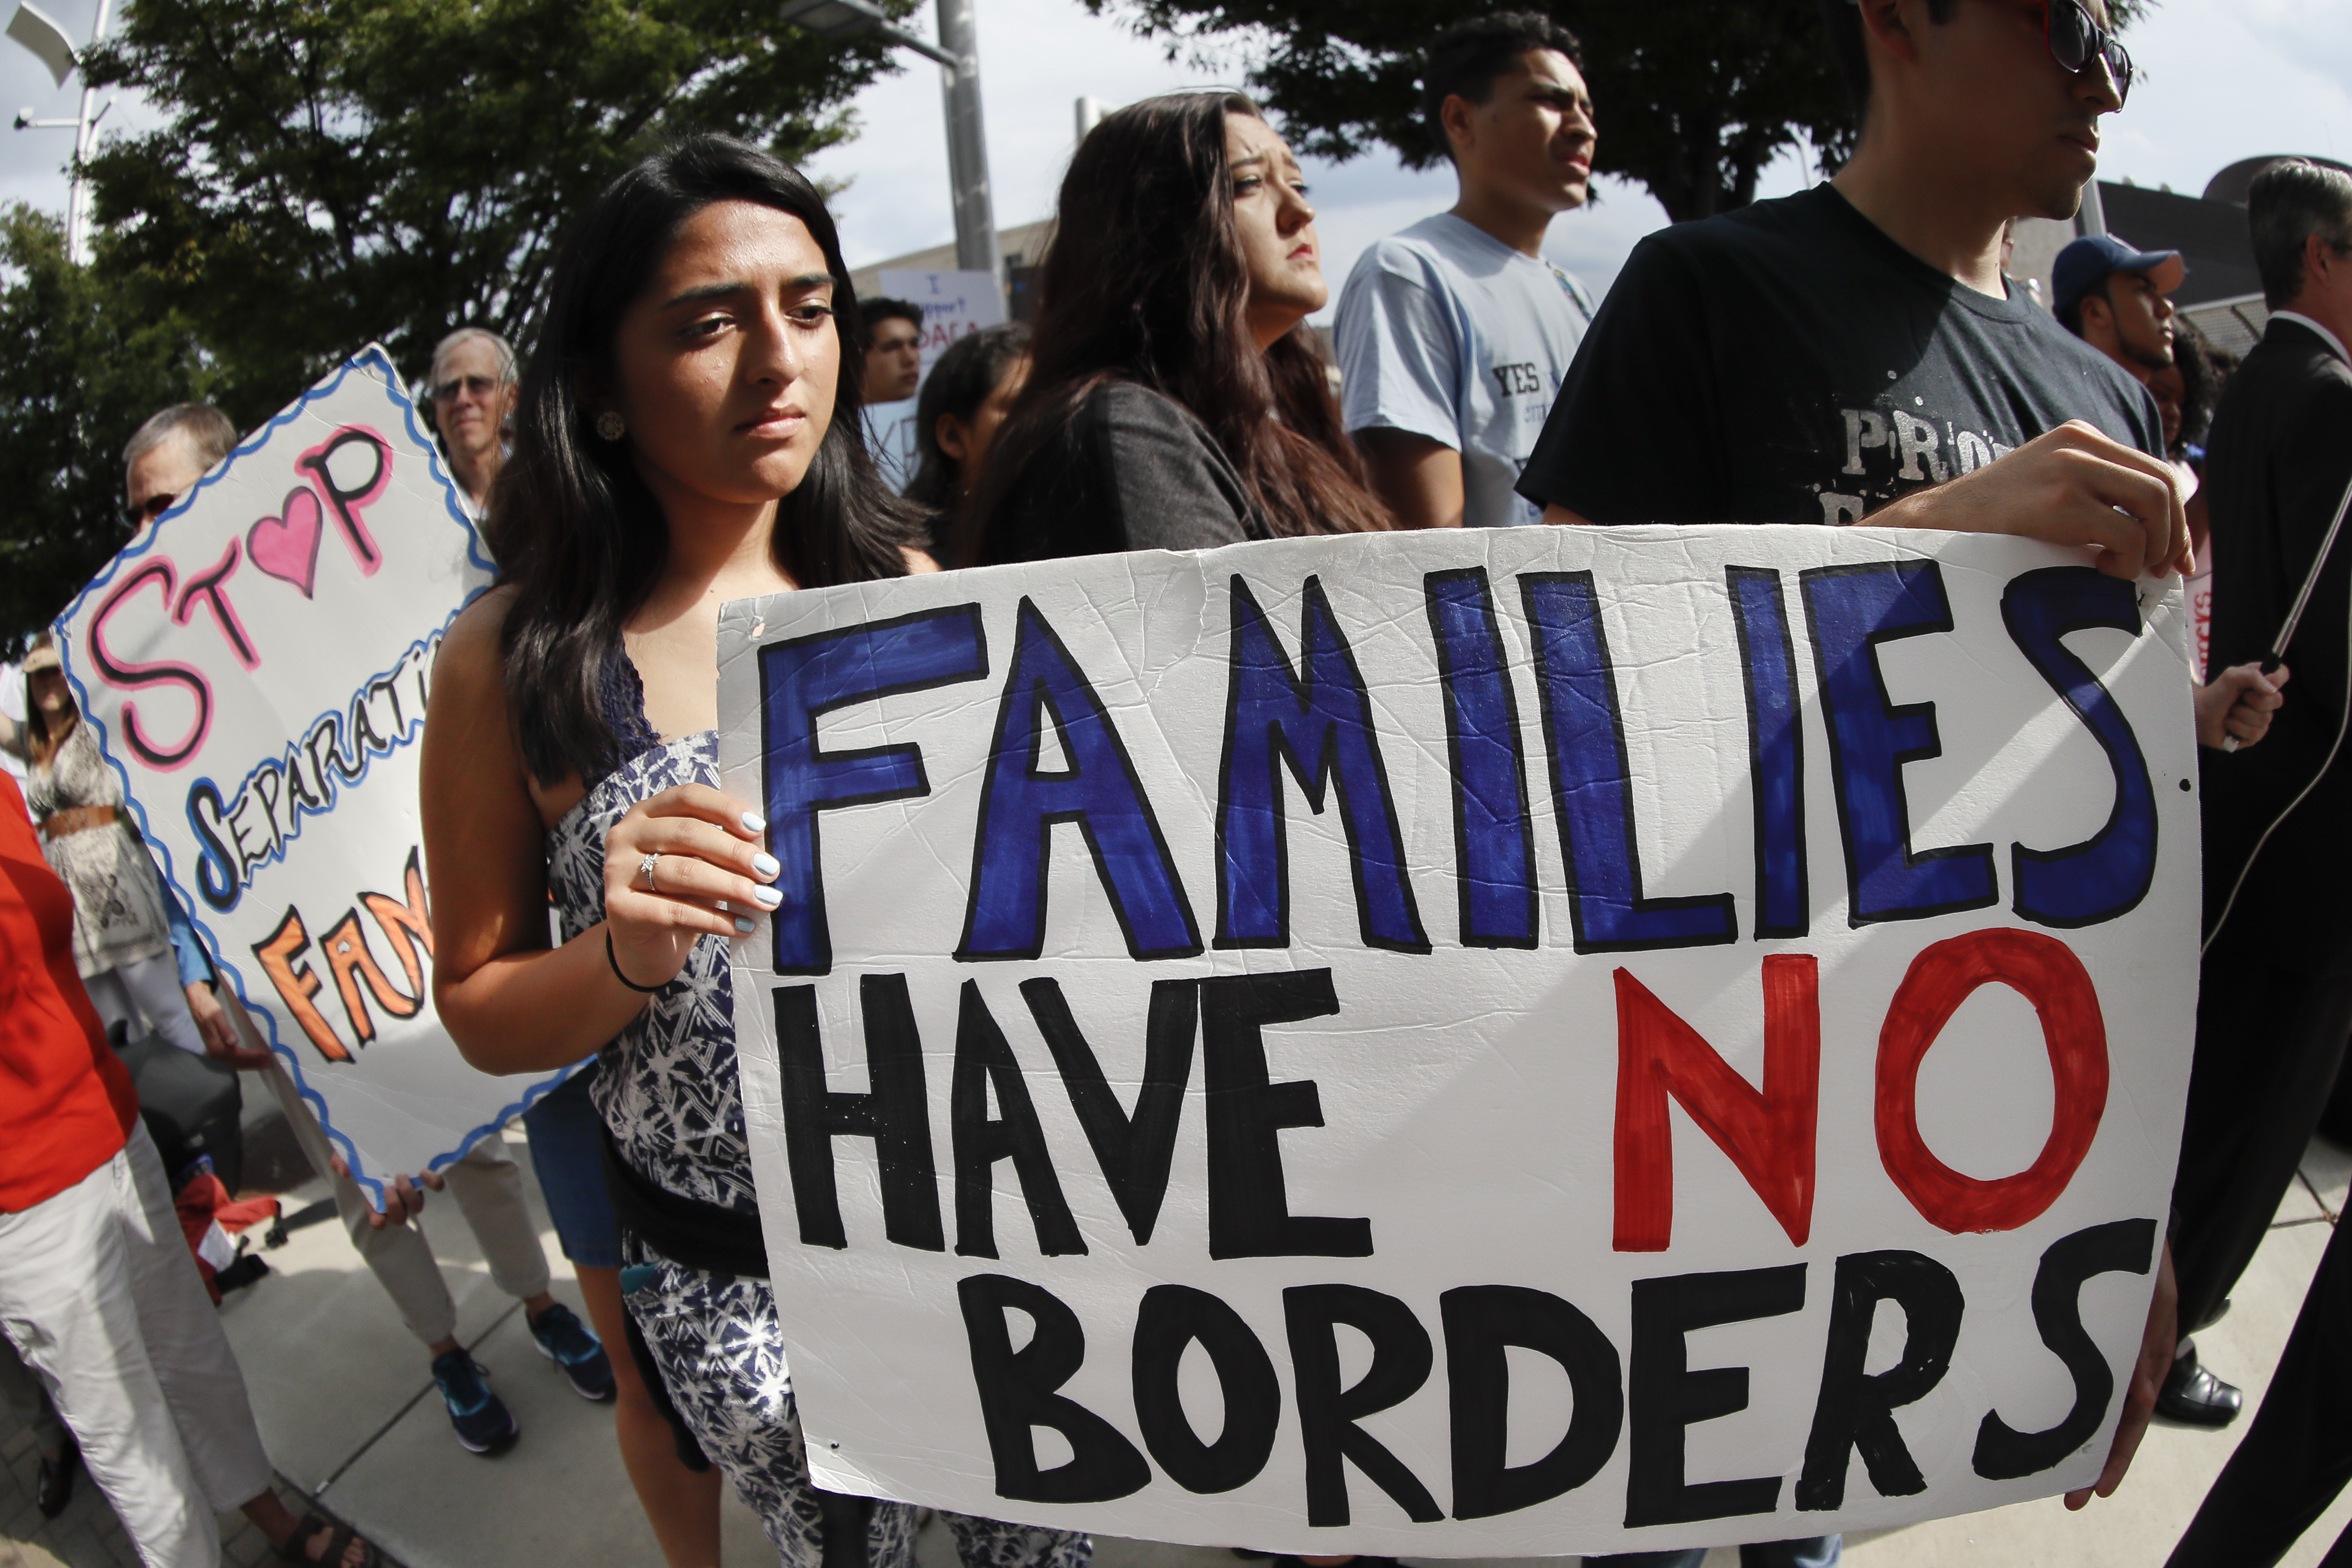 lds church s stance on immigration the daily universe